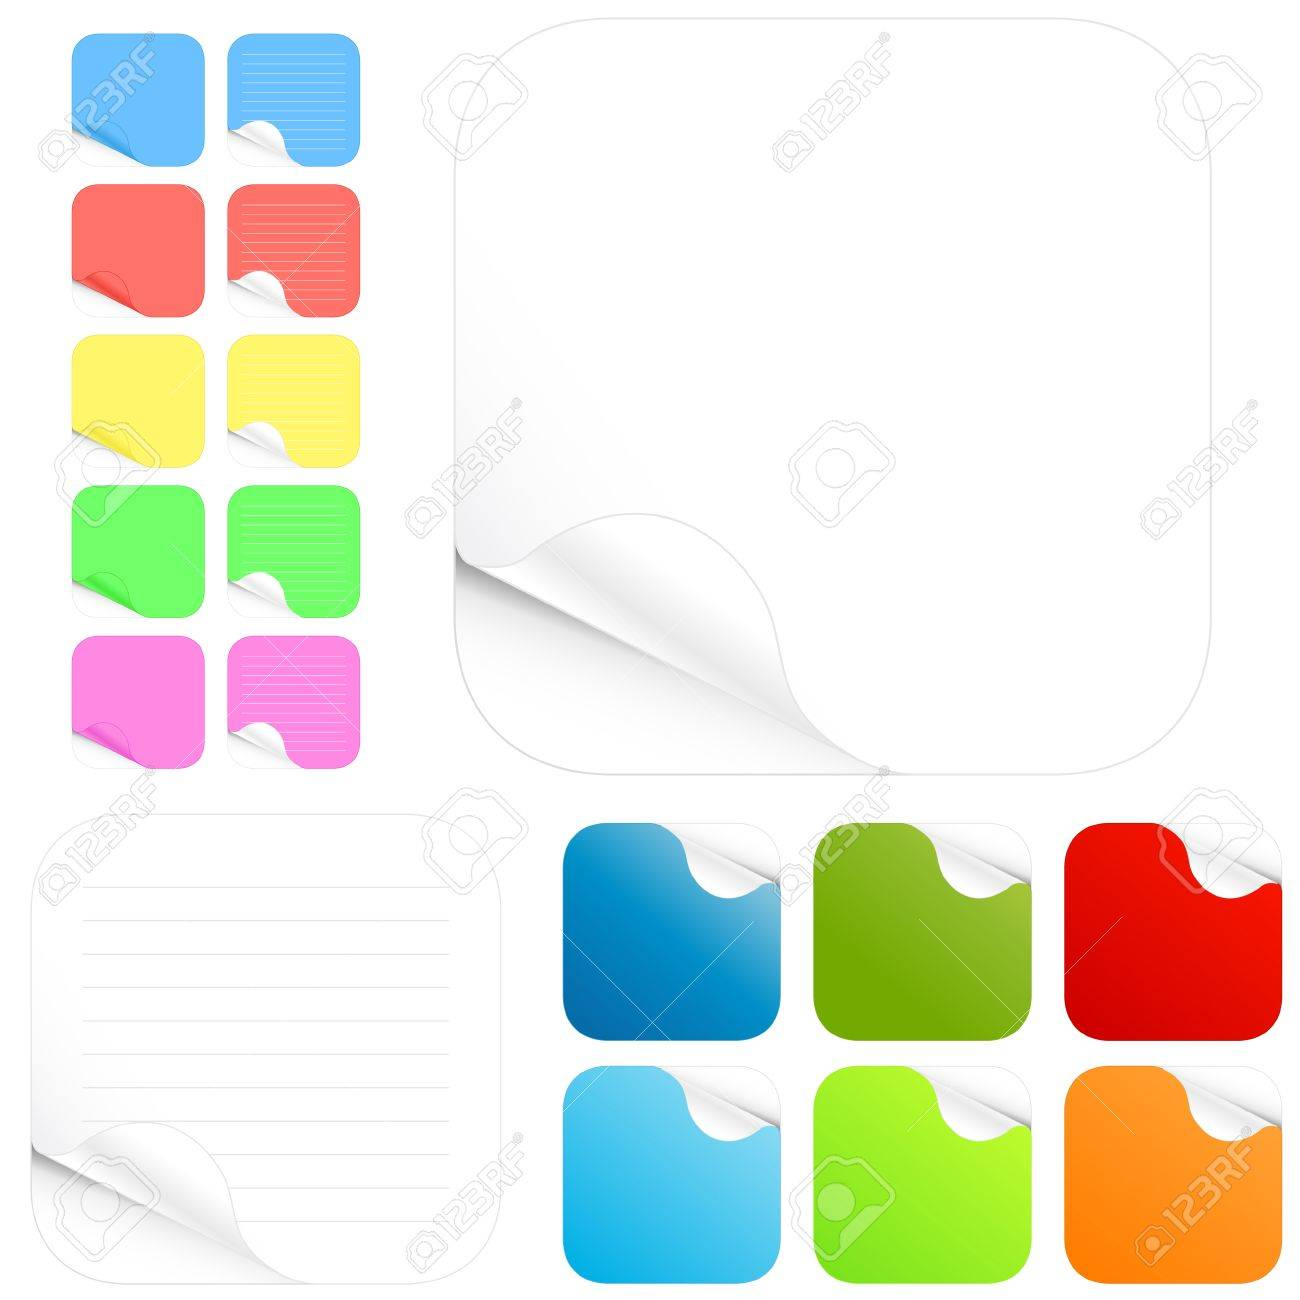 Vector illustration of paper stickers and pads in different colors with shadowed curl. Two main versions with lines and without in different colors. Rounded edges. Stock Vector - 2684640